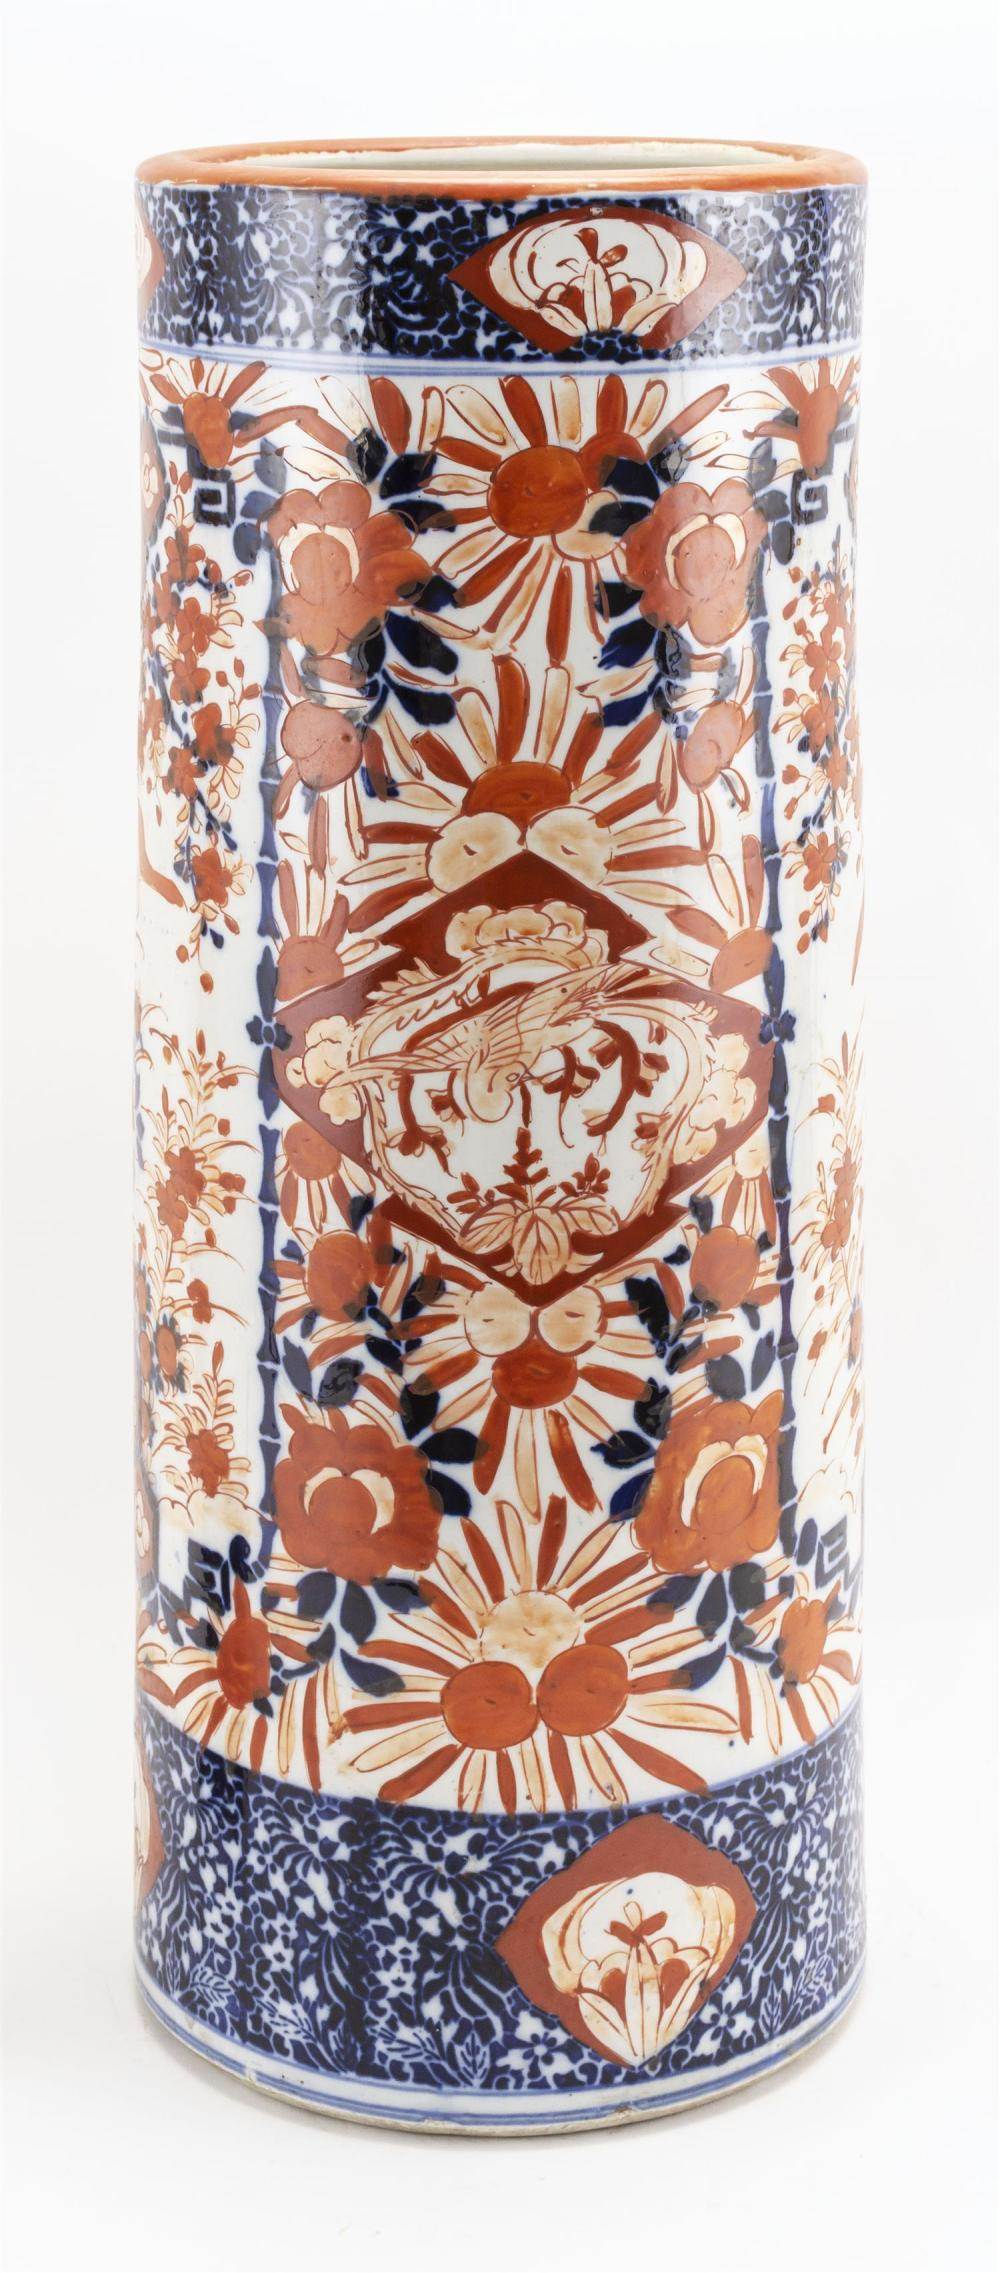 JAPANESE IMARI PORCELAIN UMBRELLA STAND Cylindrical, with a bird and floral design. Height 24.5